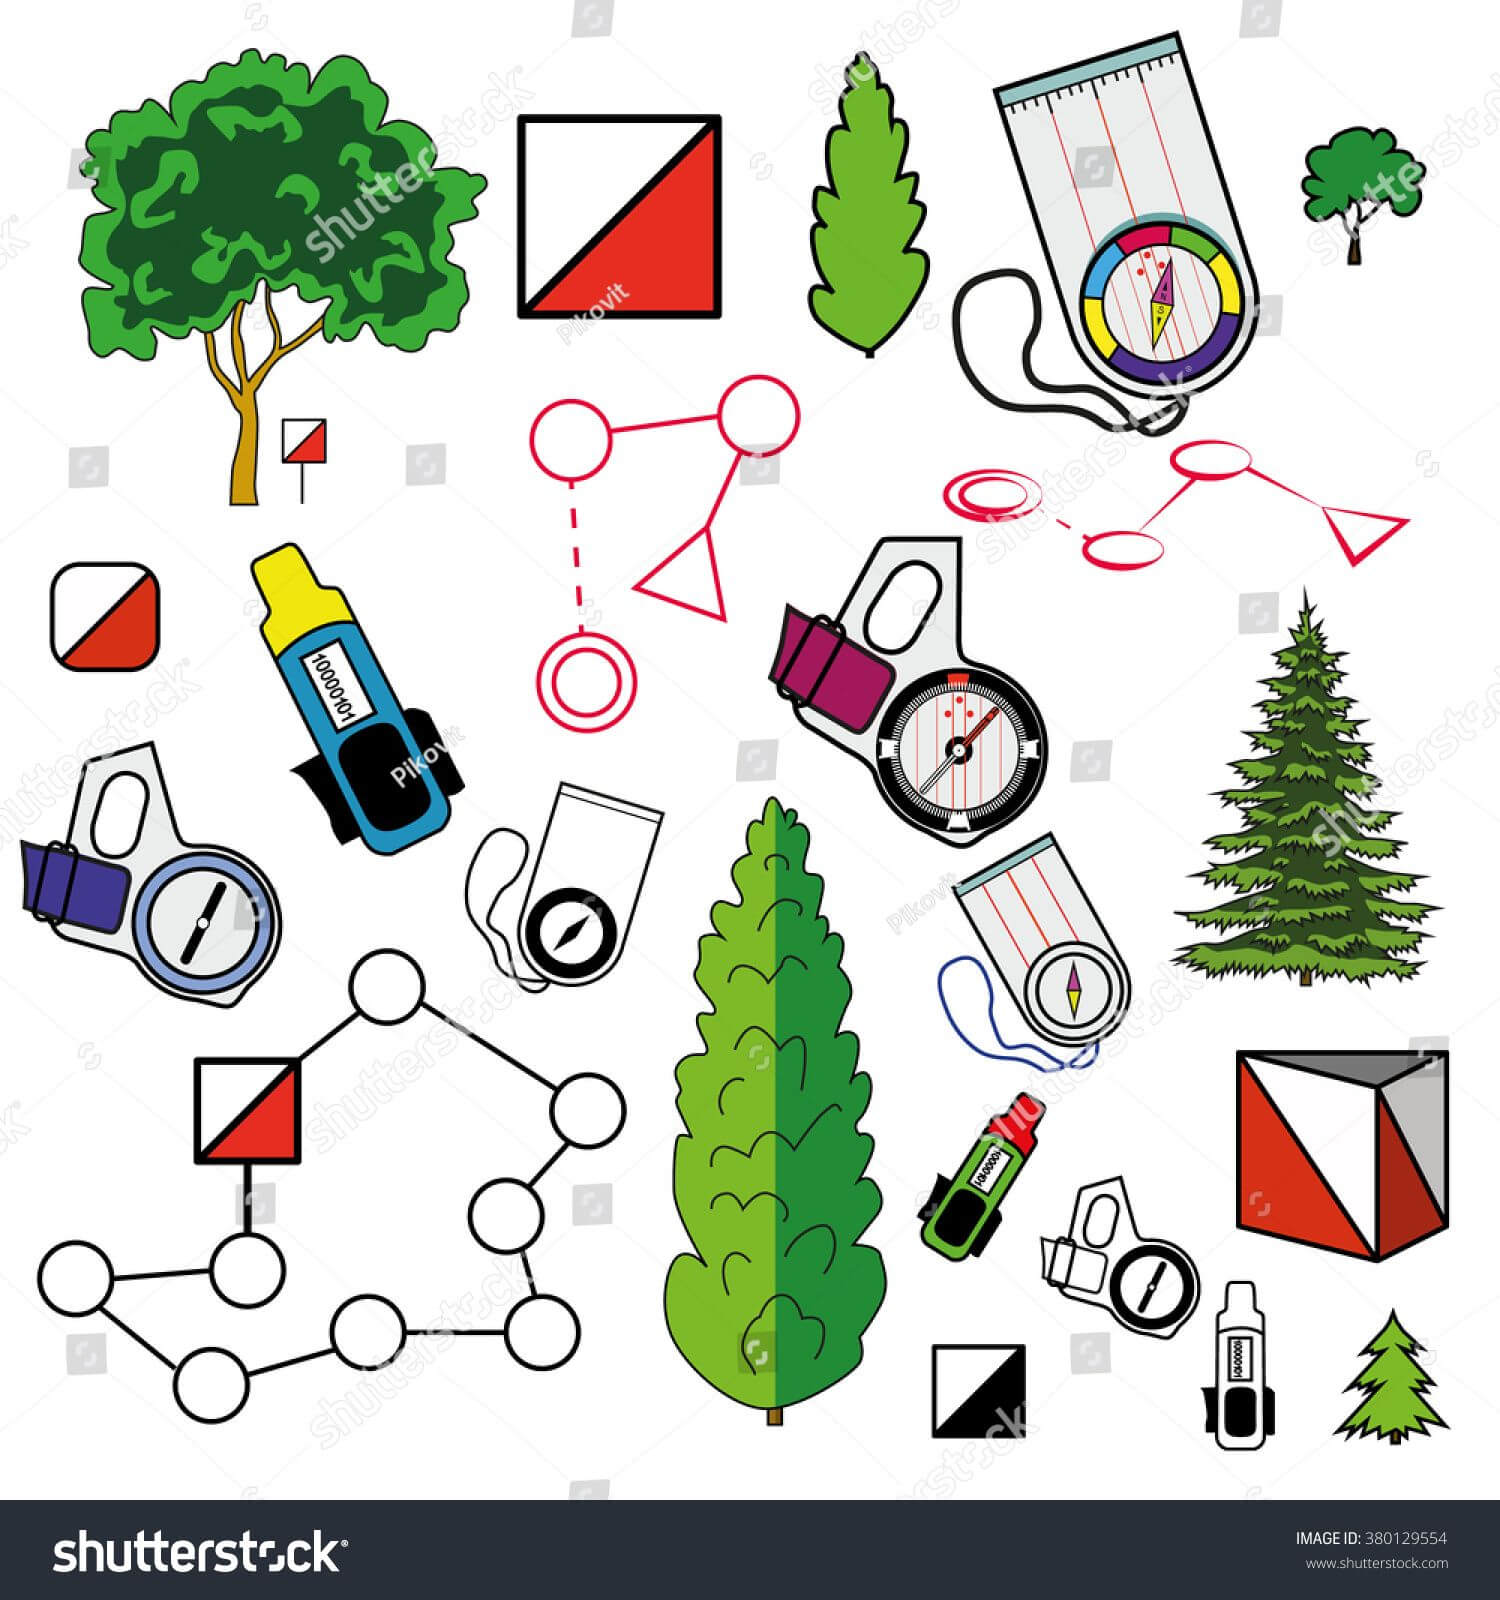 Sports Orienteering Icons Set Of Elements: Control Points With Orienteering Control Card Template